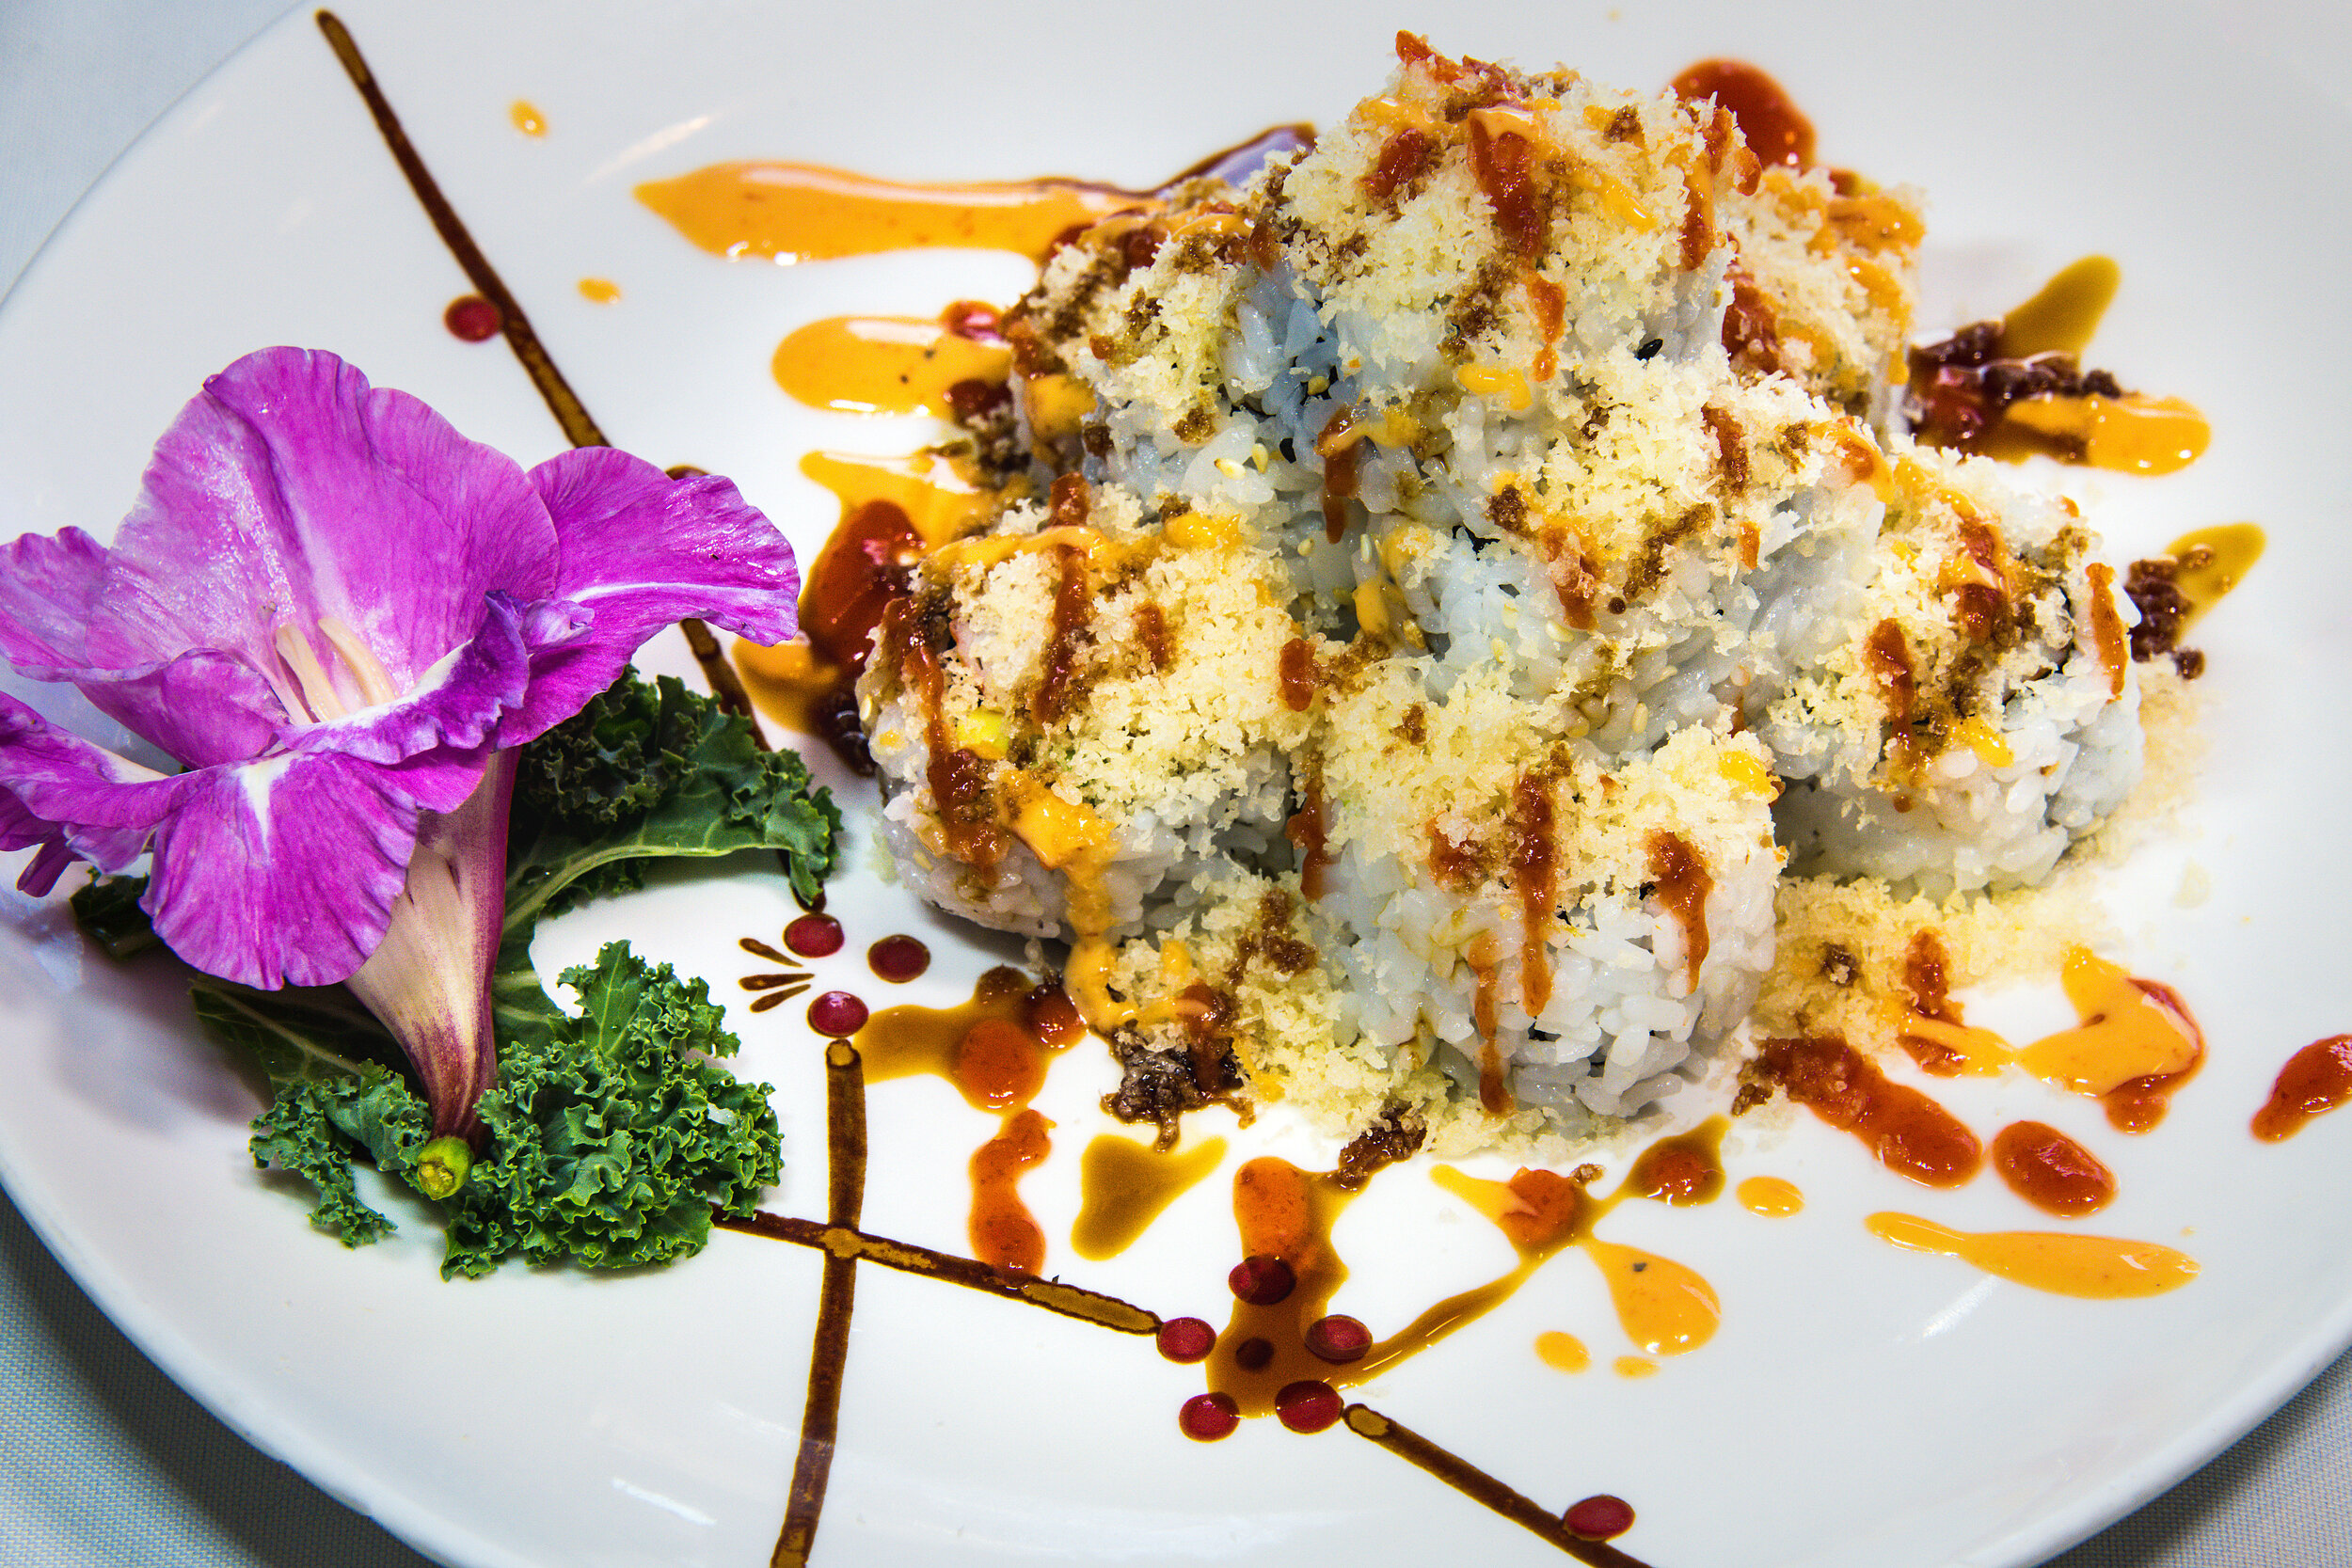 Volcano Roll (8) $9.99 Crab Meat Avocado Topped w Tempura Flake & Spicy Sauce